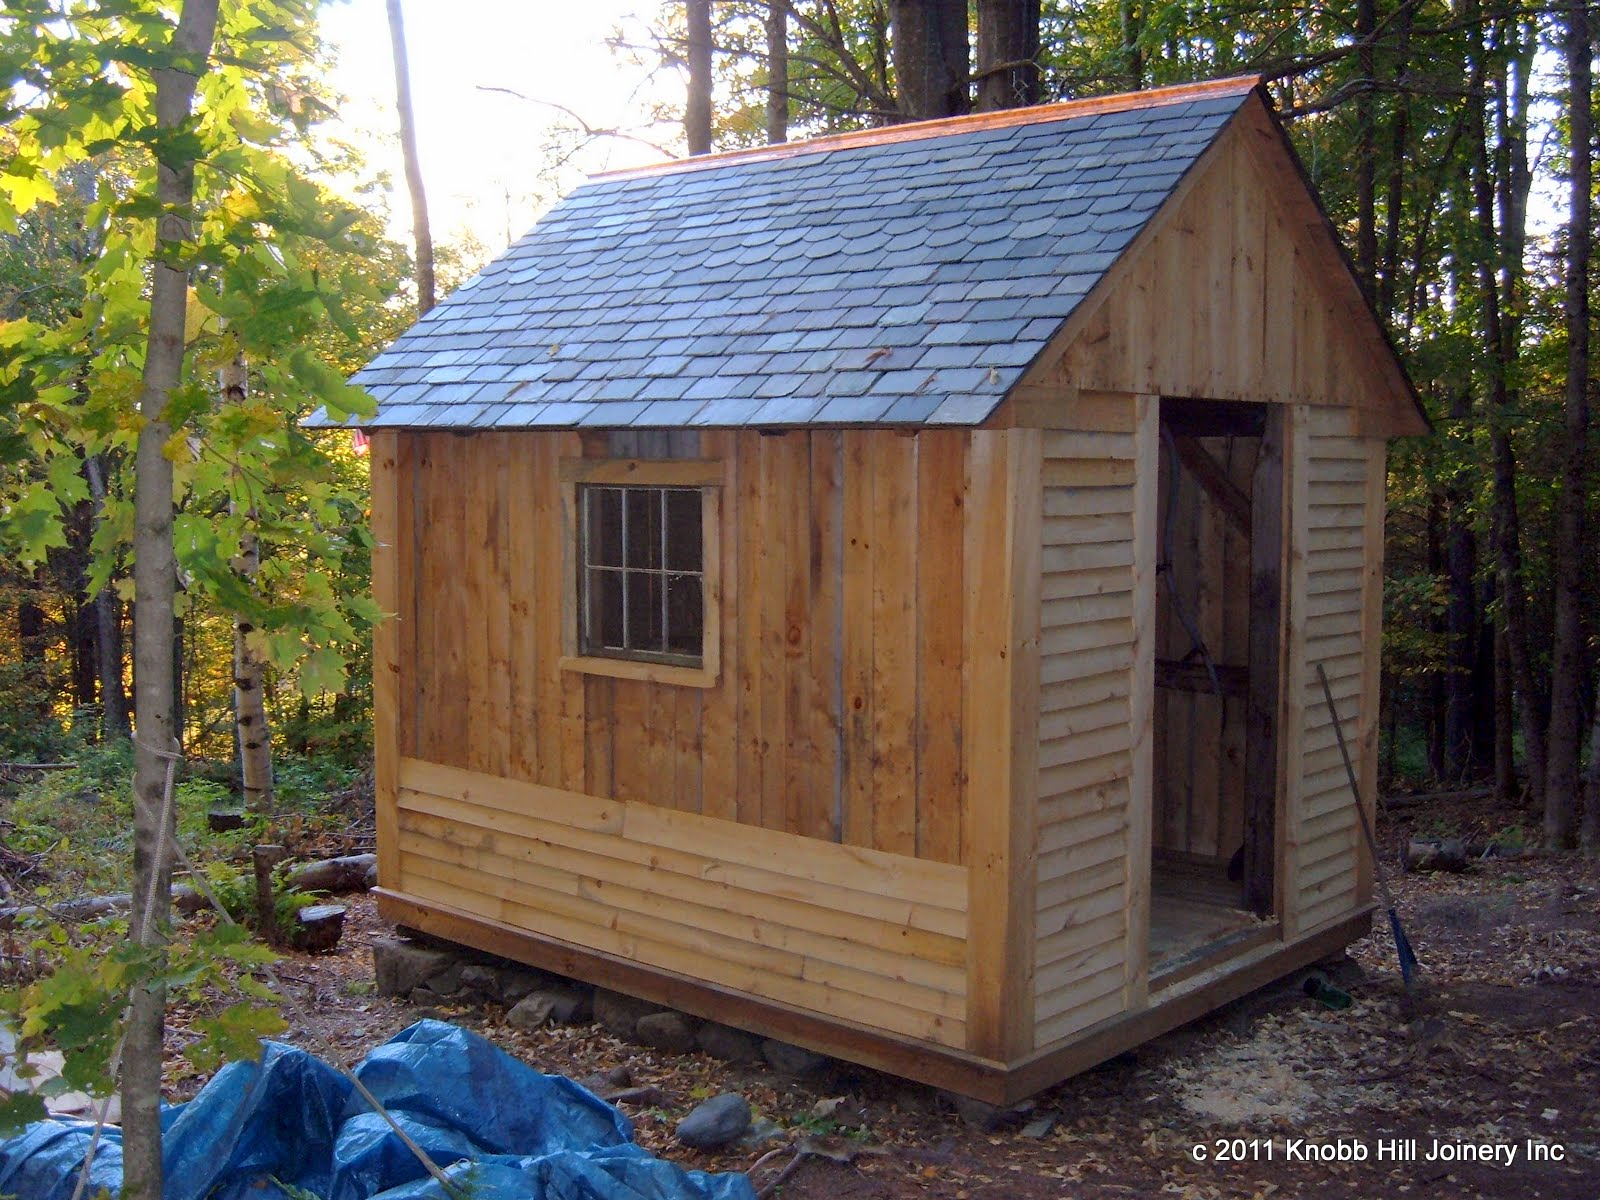 Here is the shed at its final resting place.  With the slate roof and copper ridge in place it nears completion.